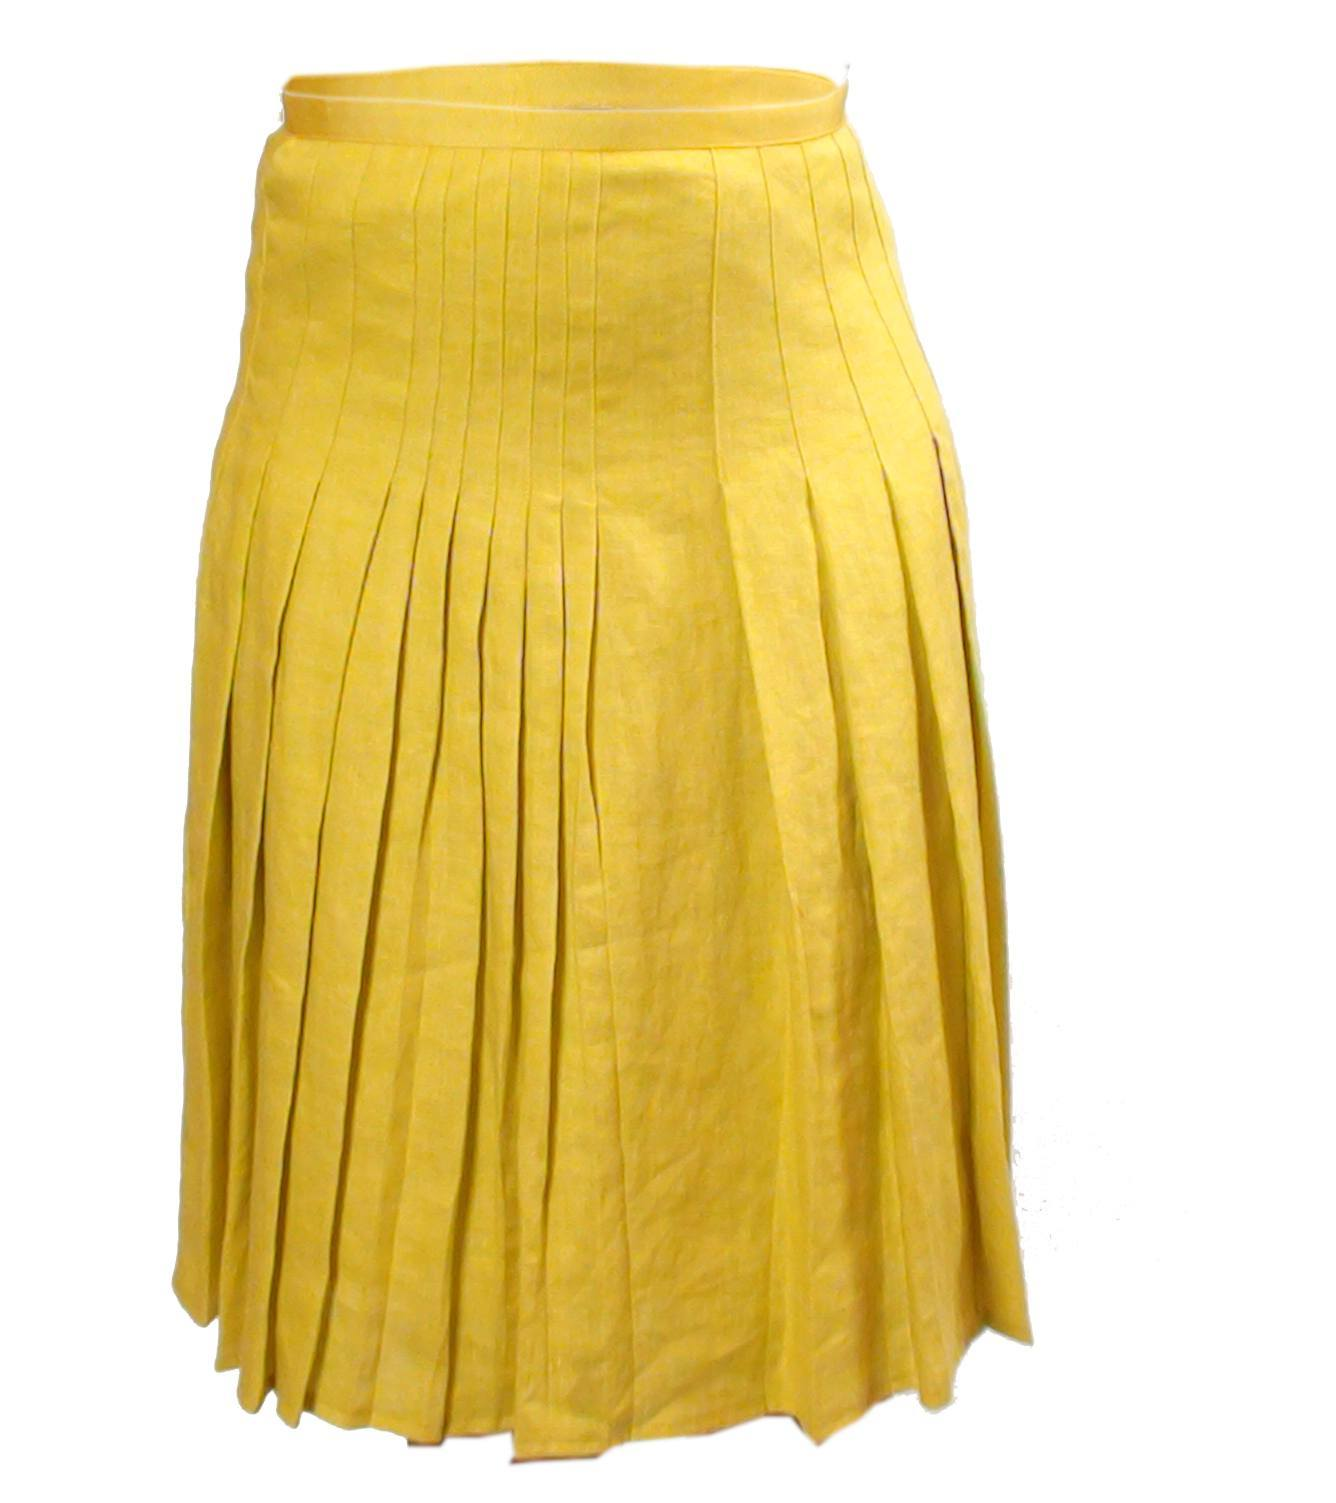 LADIES YELLOW PLEAT DETAIL PURE LINEN SKIRT - Give UK - Ninostyle